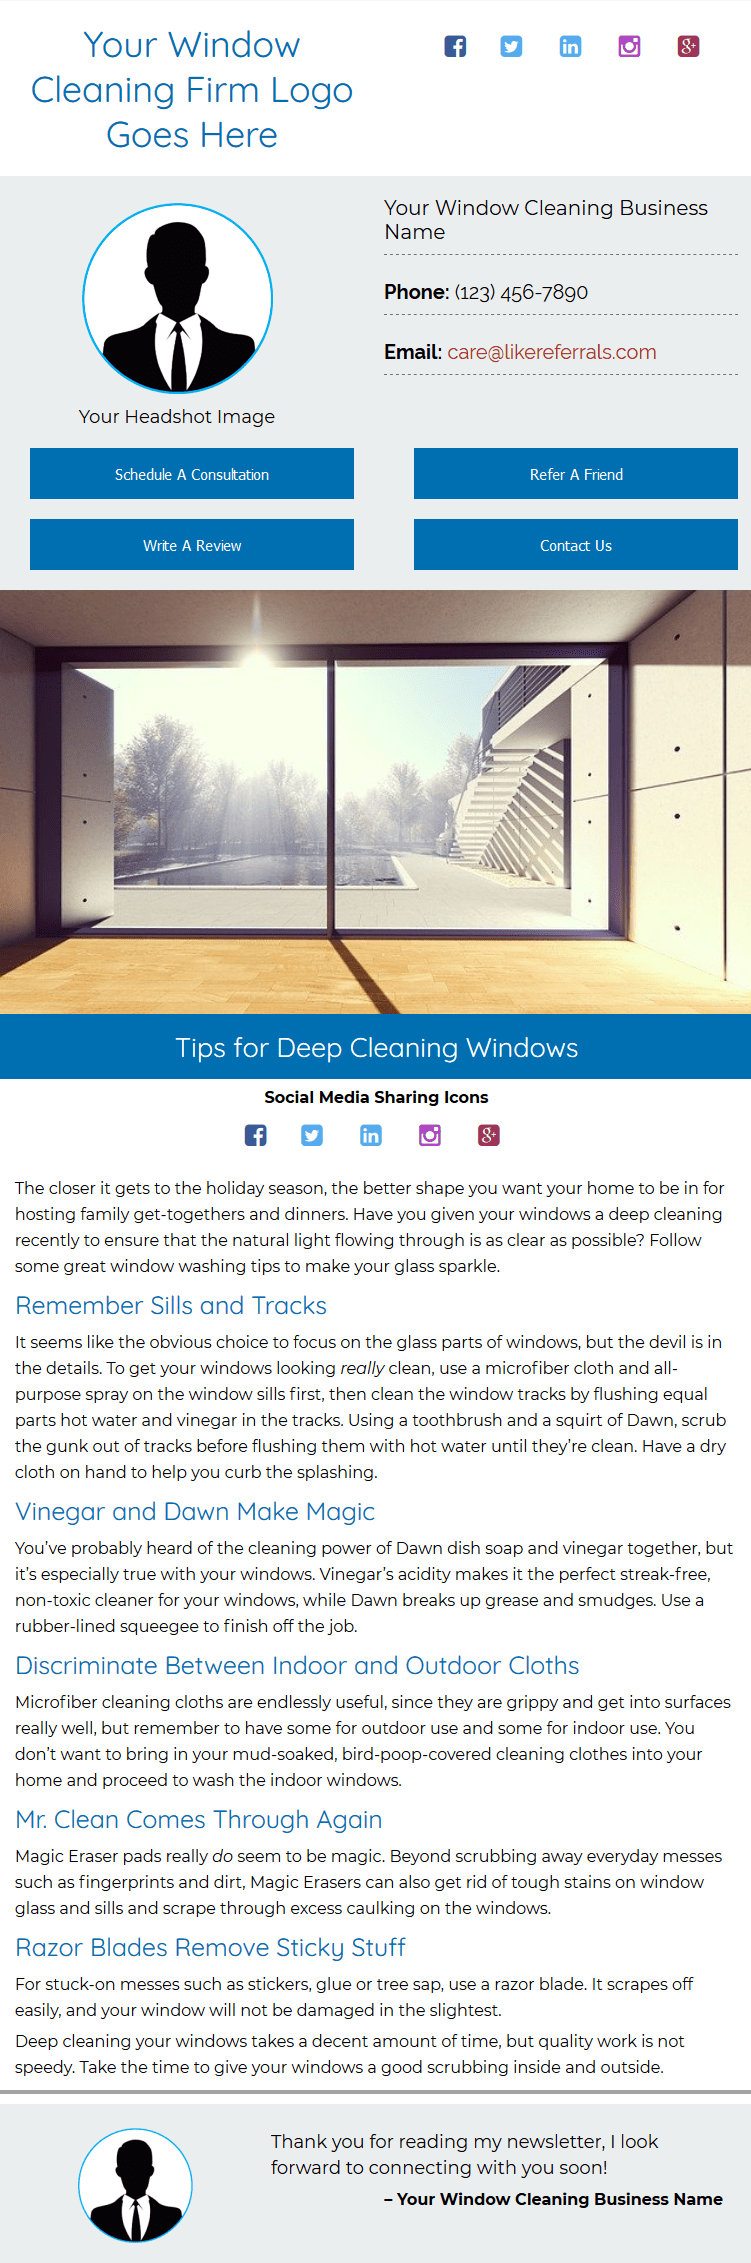 Email Newsletter Marketing Services for Window Cleaning Services